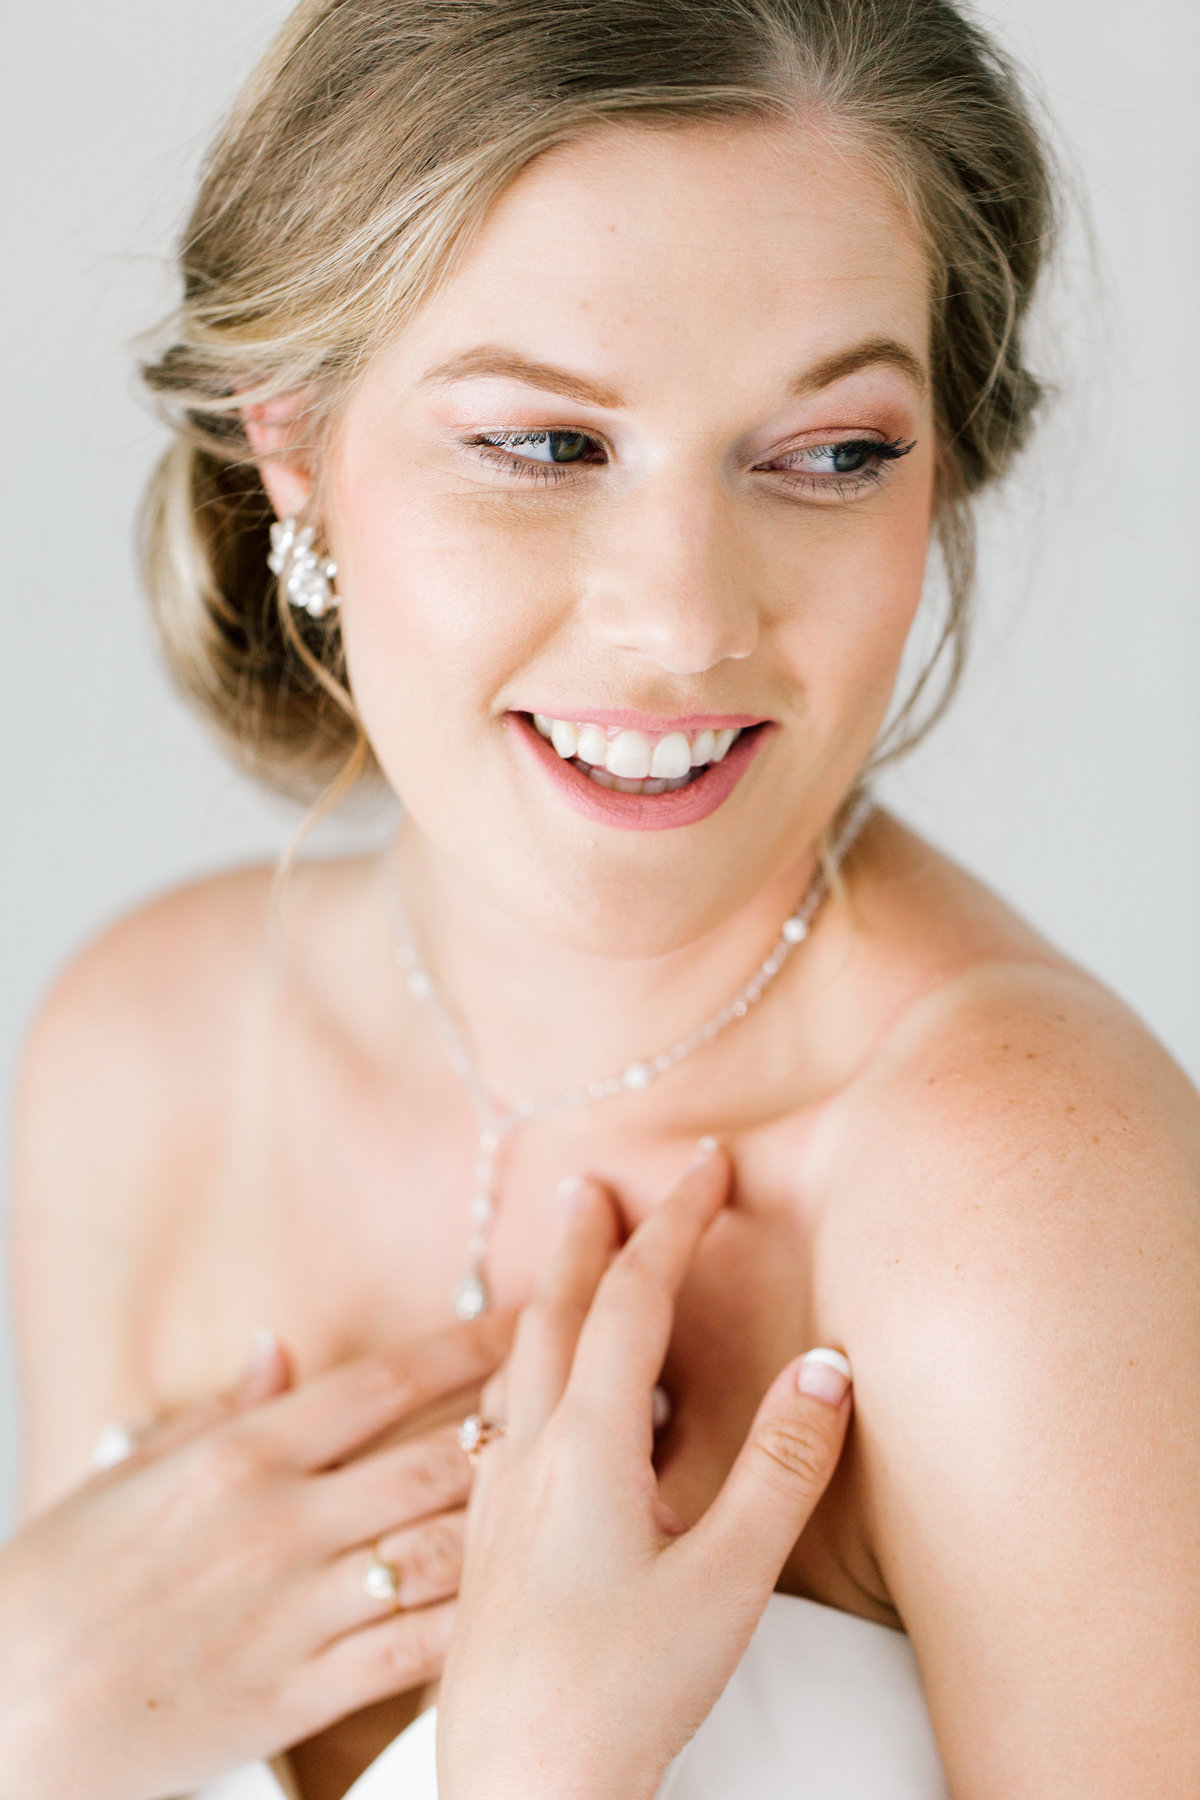 bride smiling and wearing jewelry